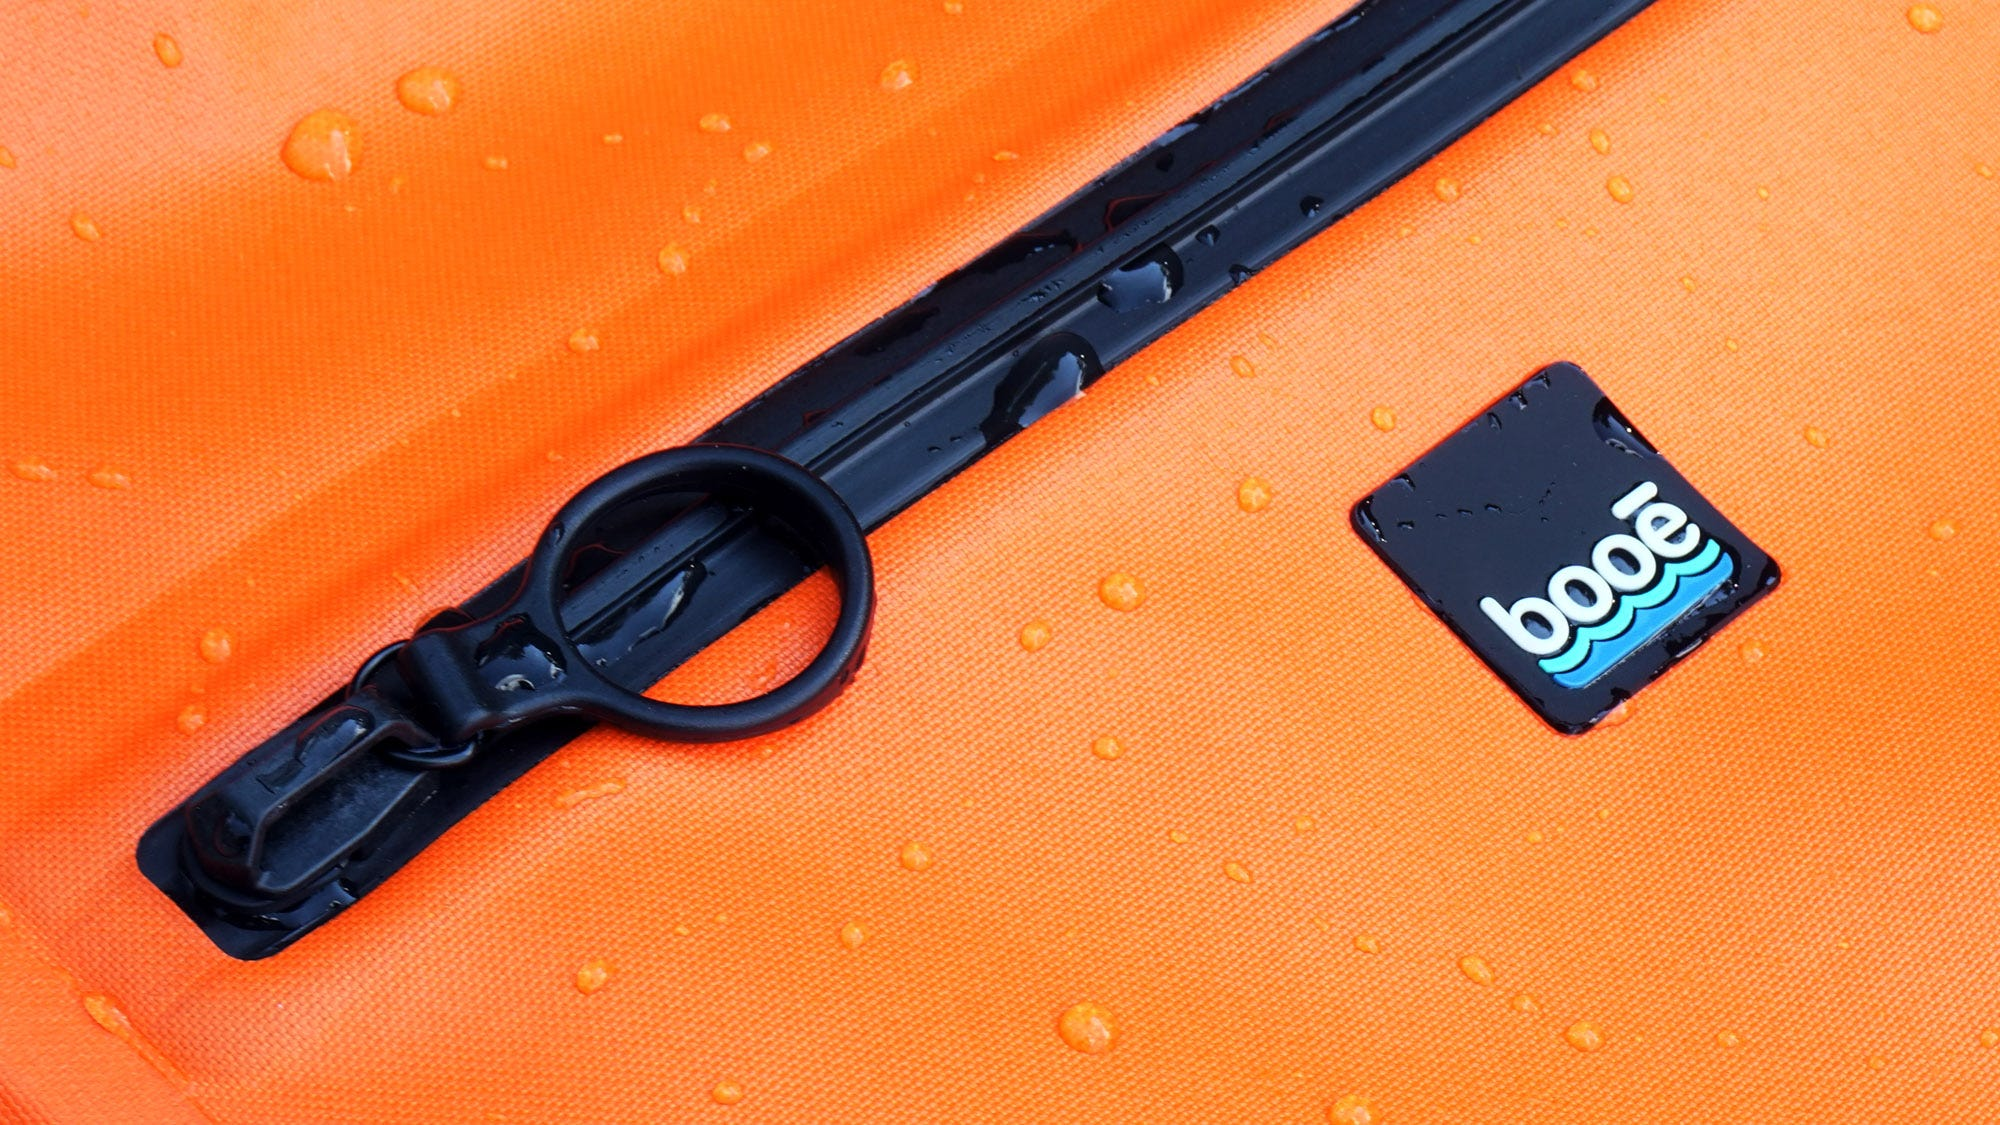 The TruZip toothless plastic zipper on the Hybrid 20 backpack.